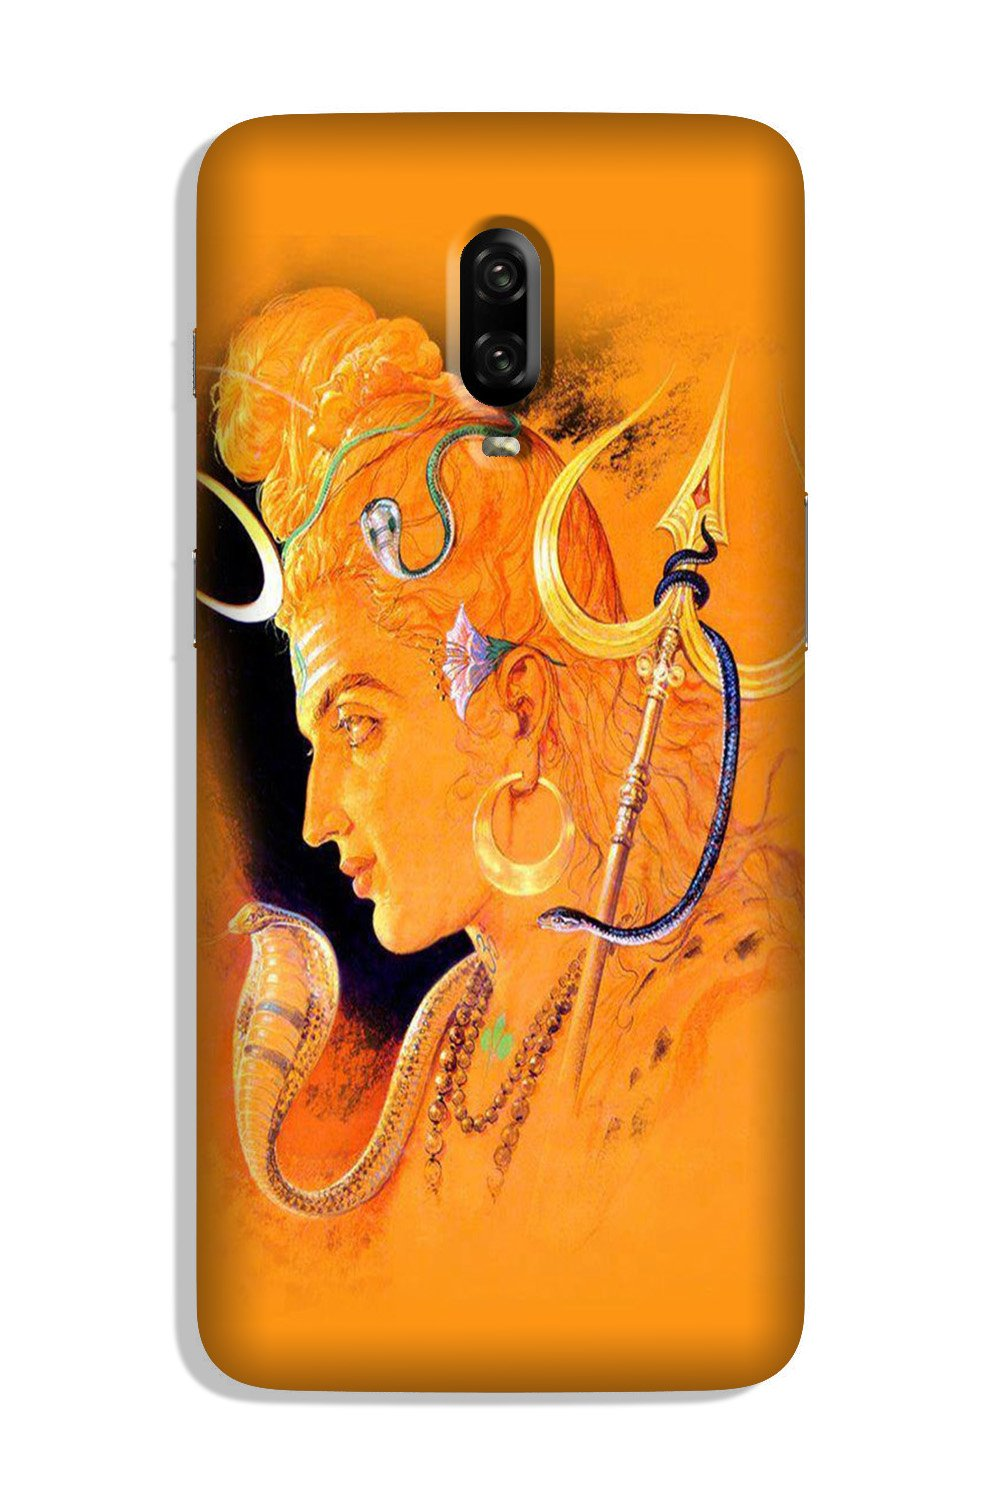 Lord Shiva Case for OnePlus 6T (Design No. 293)